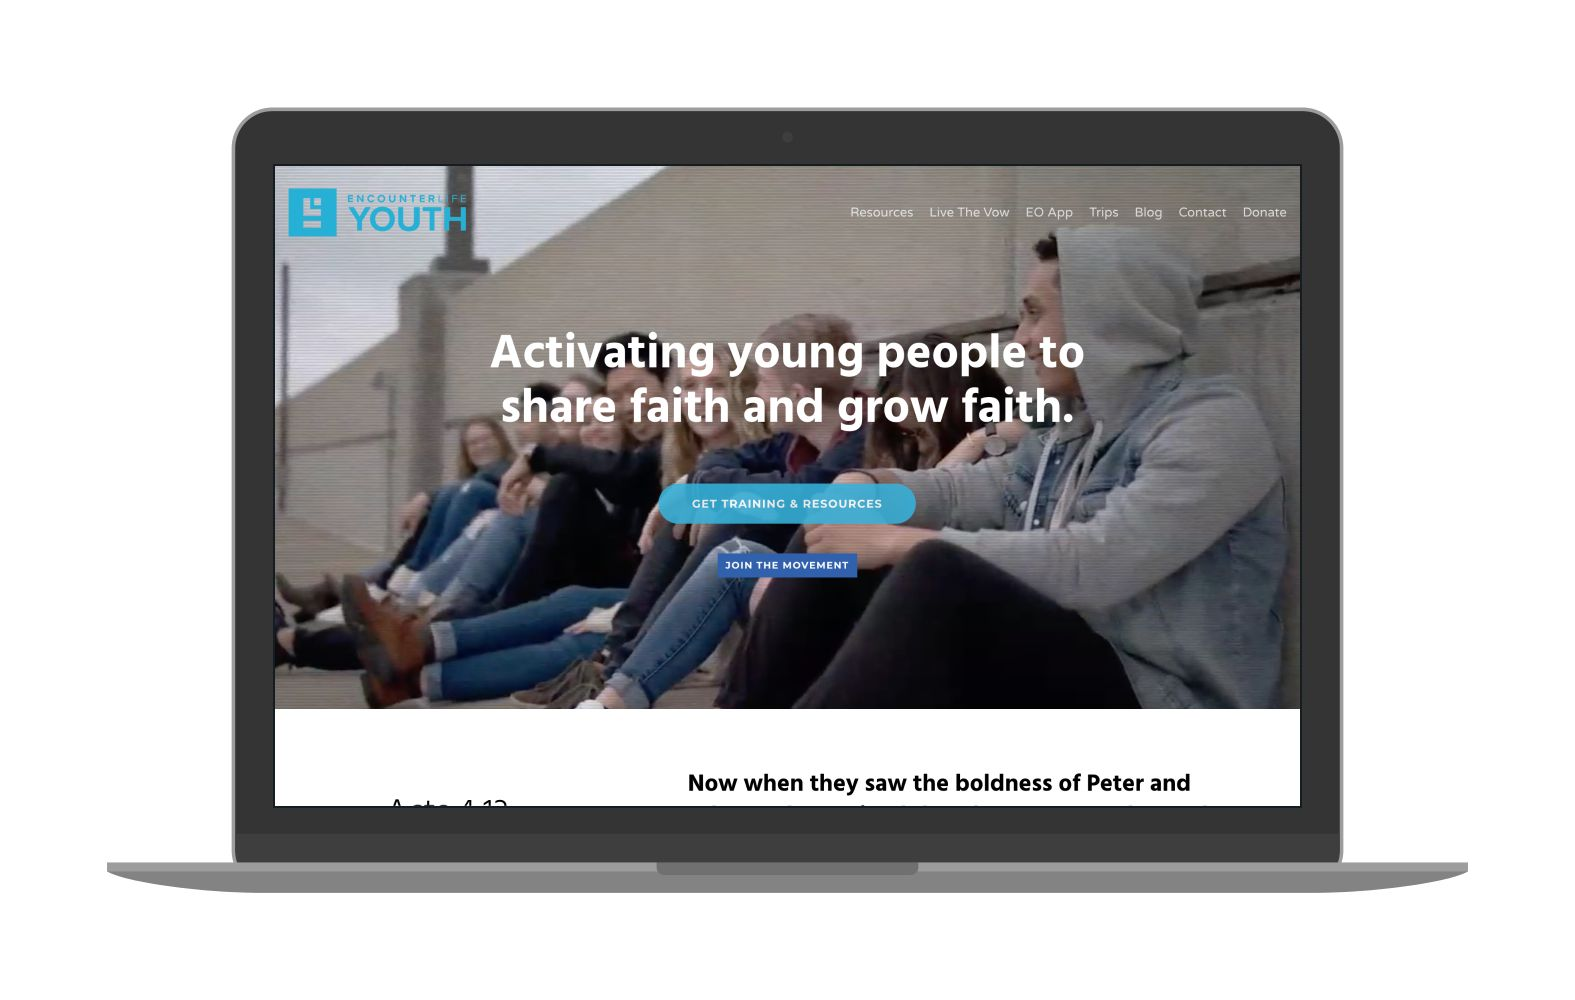 Swank Design Website and Graphic Design Encounter Life Youth Mockup